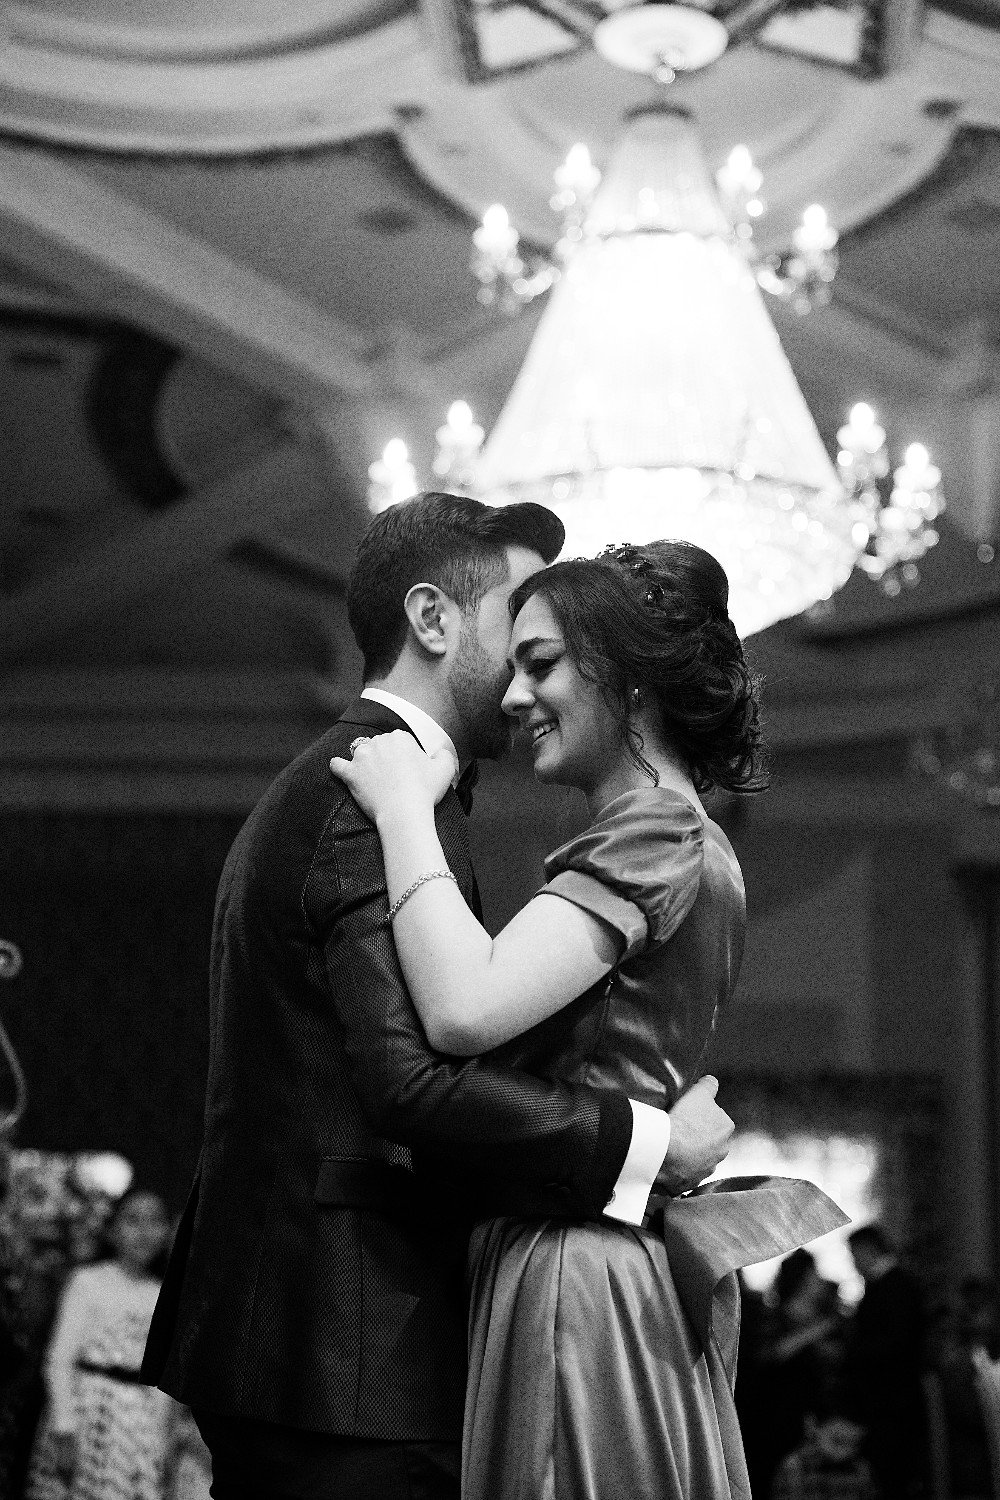 Private ballroom dance lessons can help your dance moves look naturally perfect